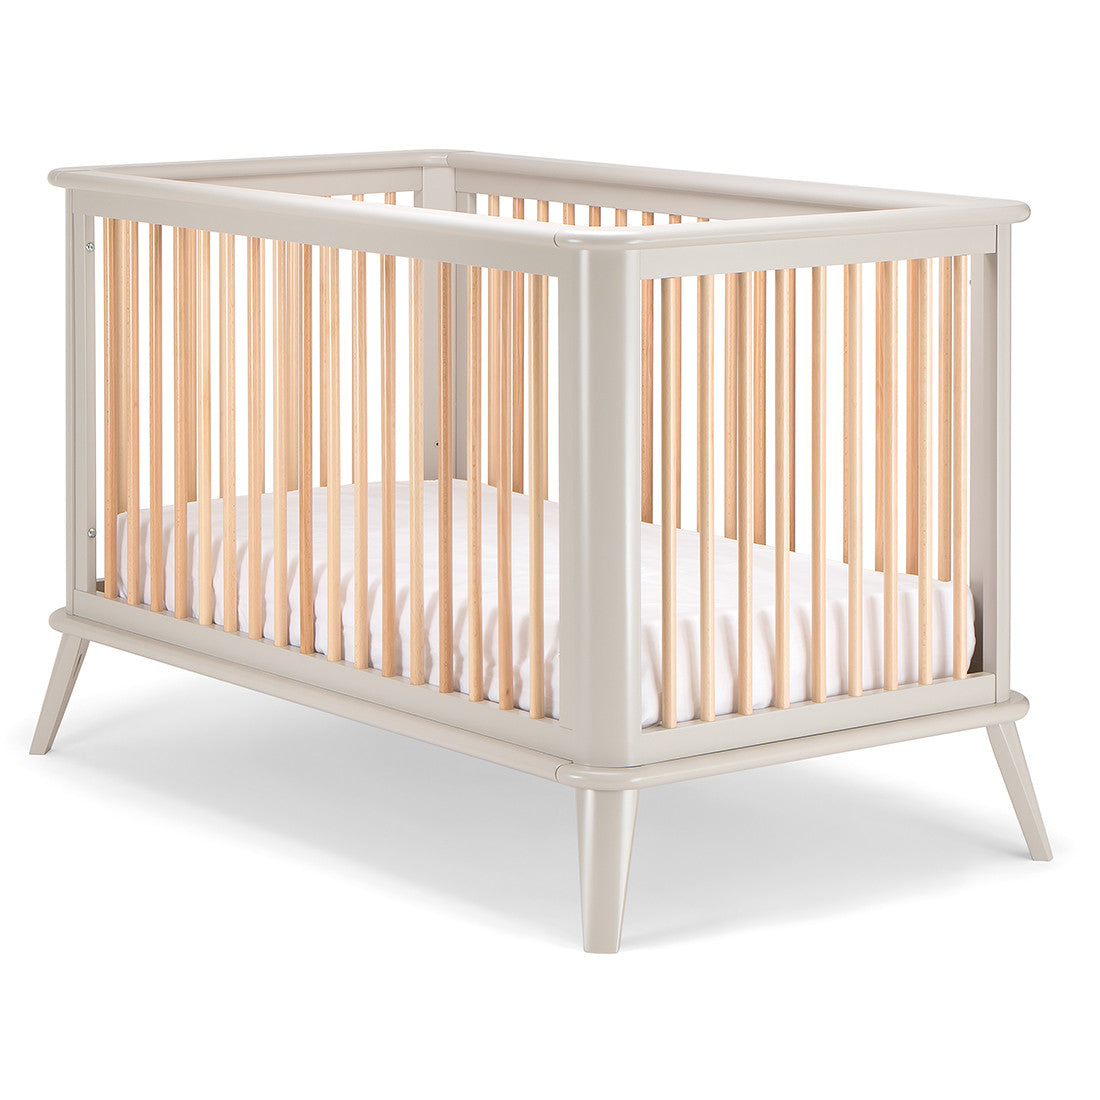 crib in today mini dream me piper on convertible garden home finish wood product natural free shipping overstock